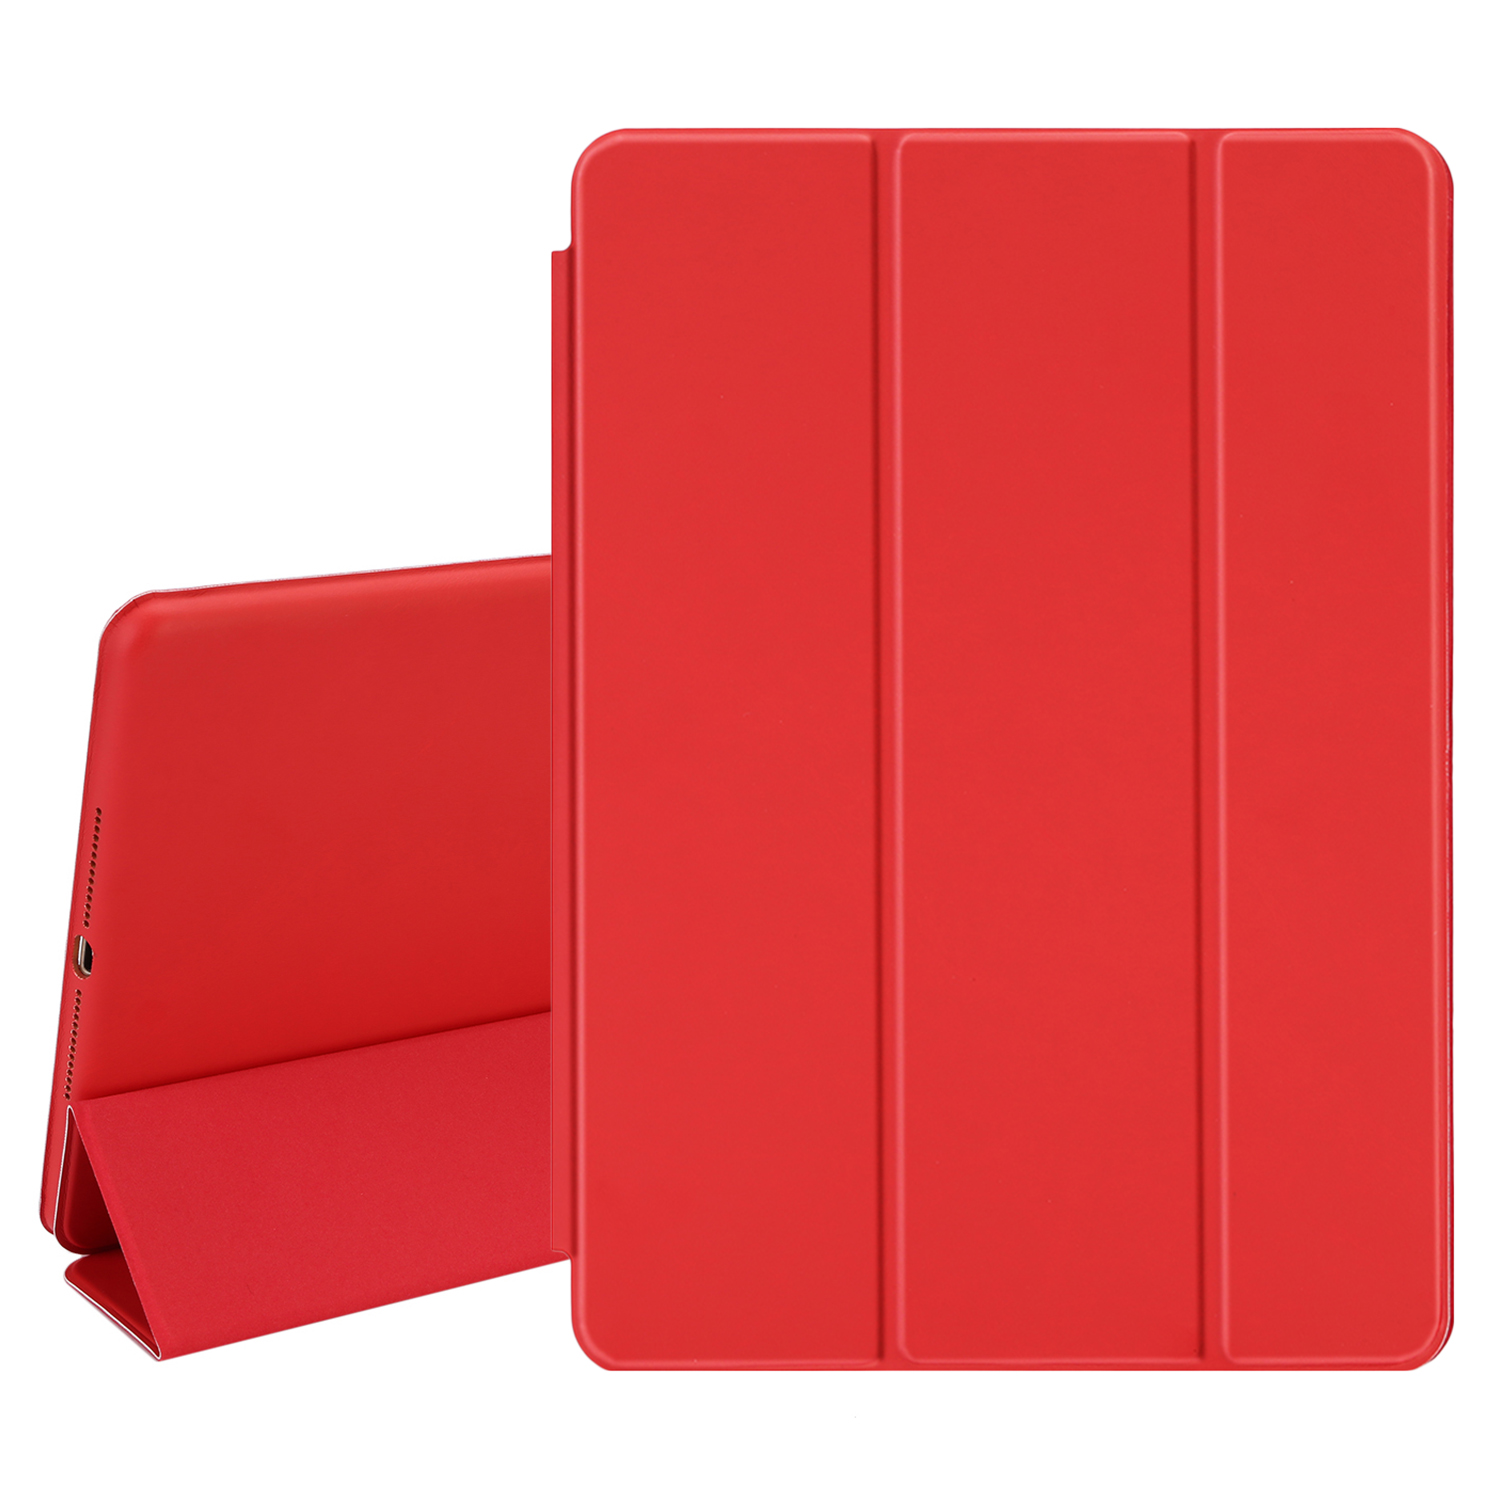 TKOOFN Ultra Thin One Single Piece Design PU Leather Smart Case [Wake/Sleep Function] for 2014 New Apple iPad Air 2